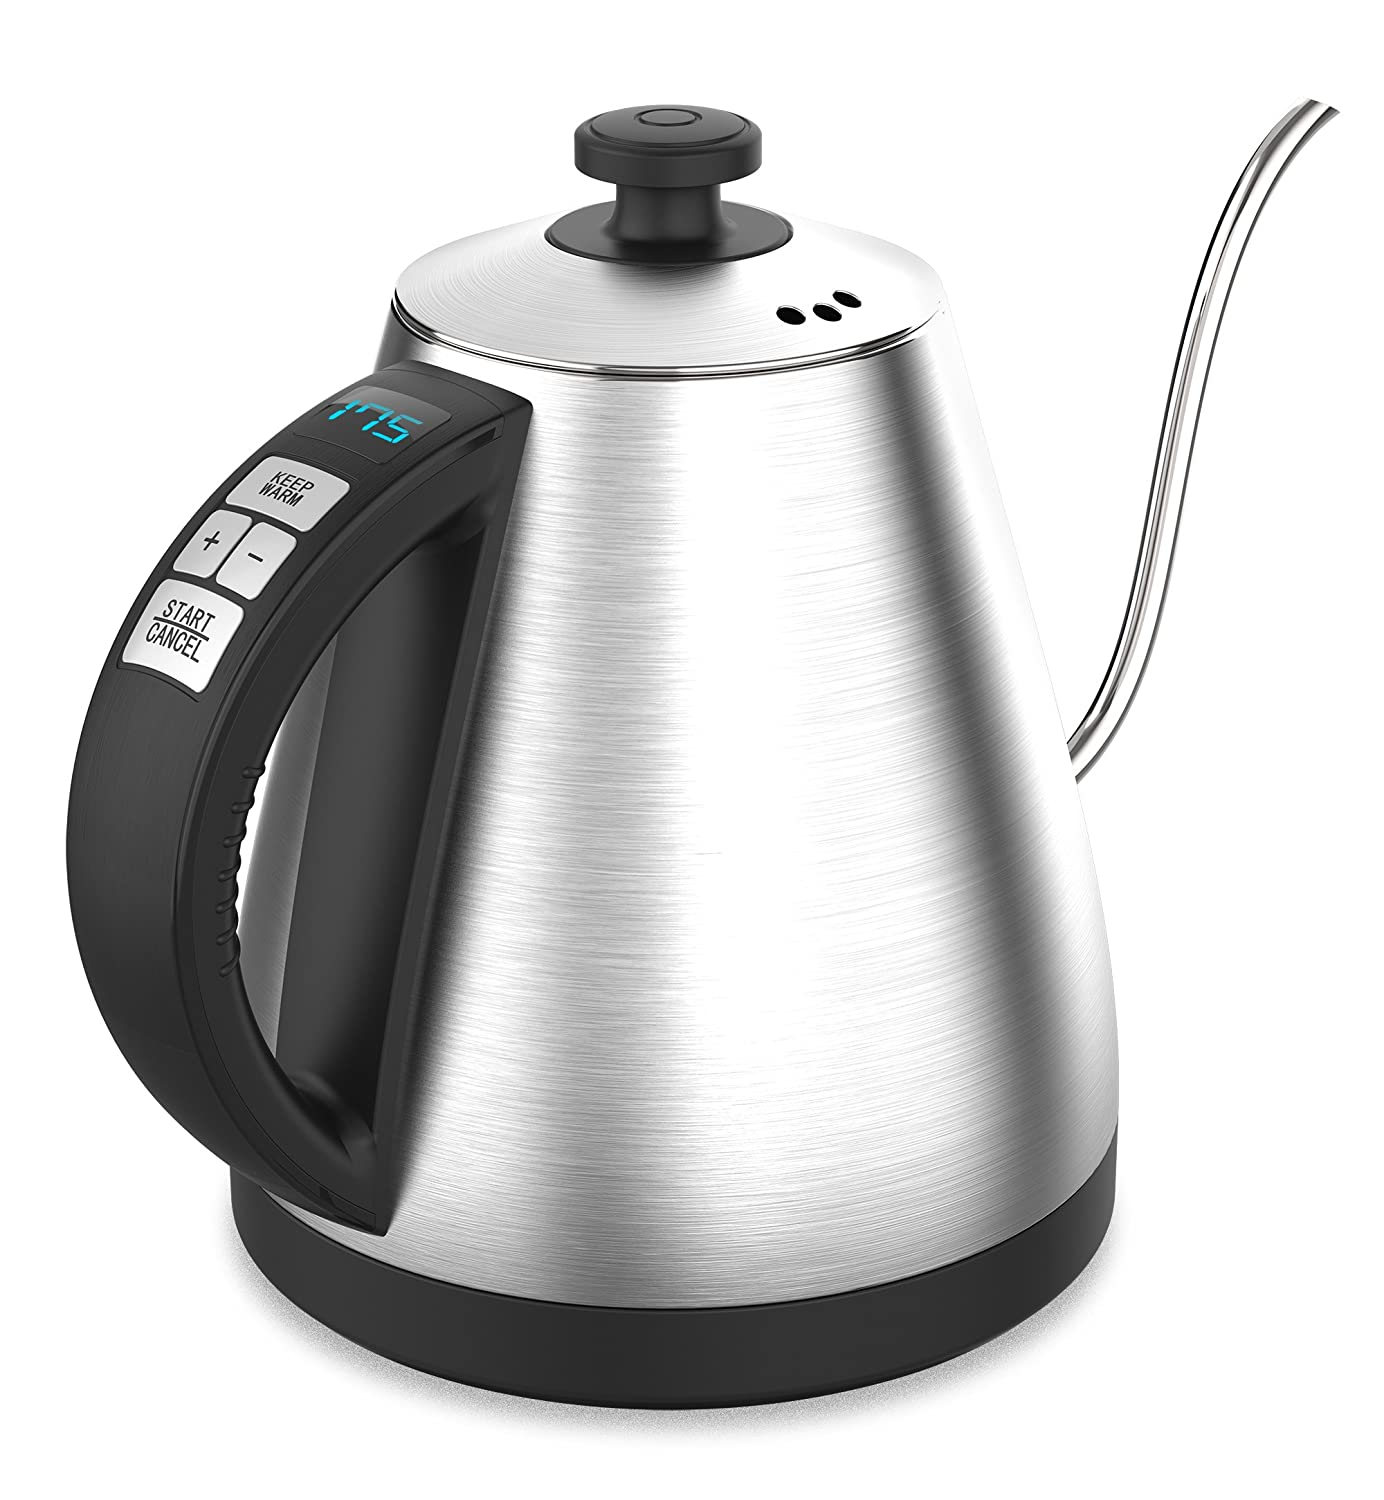 BREVO 1.0L Digital Variable Temperature Electric Gooseneck Kettle for Pour Over Drip Coffee & Tea with 120~212 °F Heating Control 1000W Fast Boiling KE4012